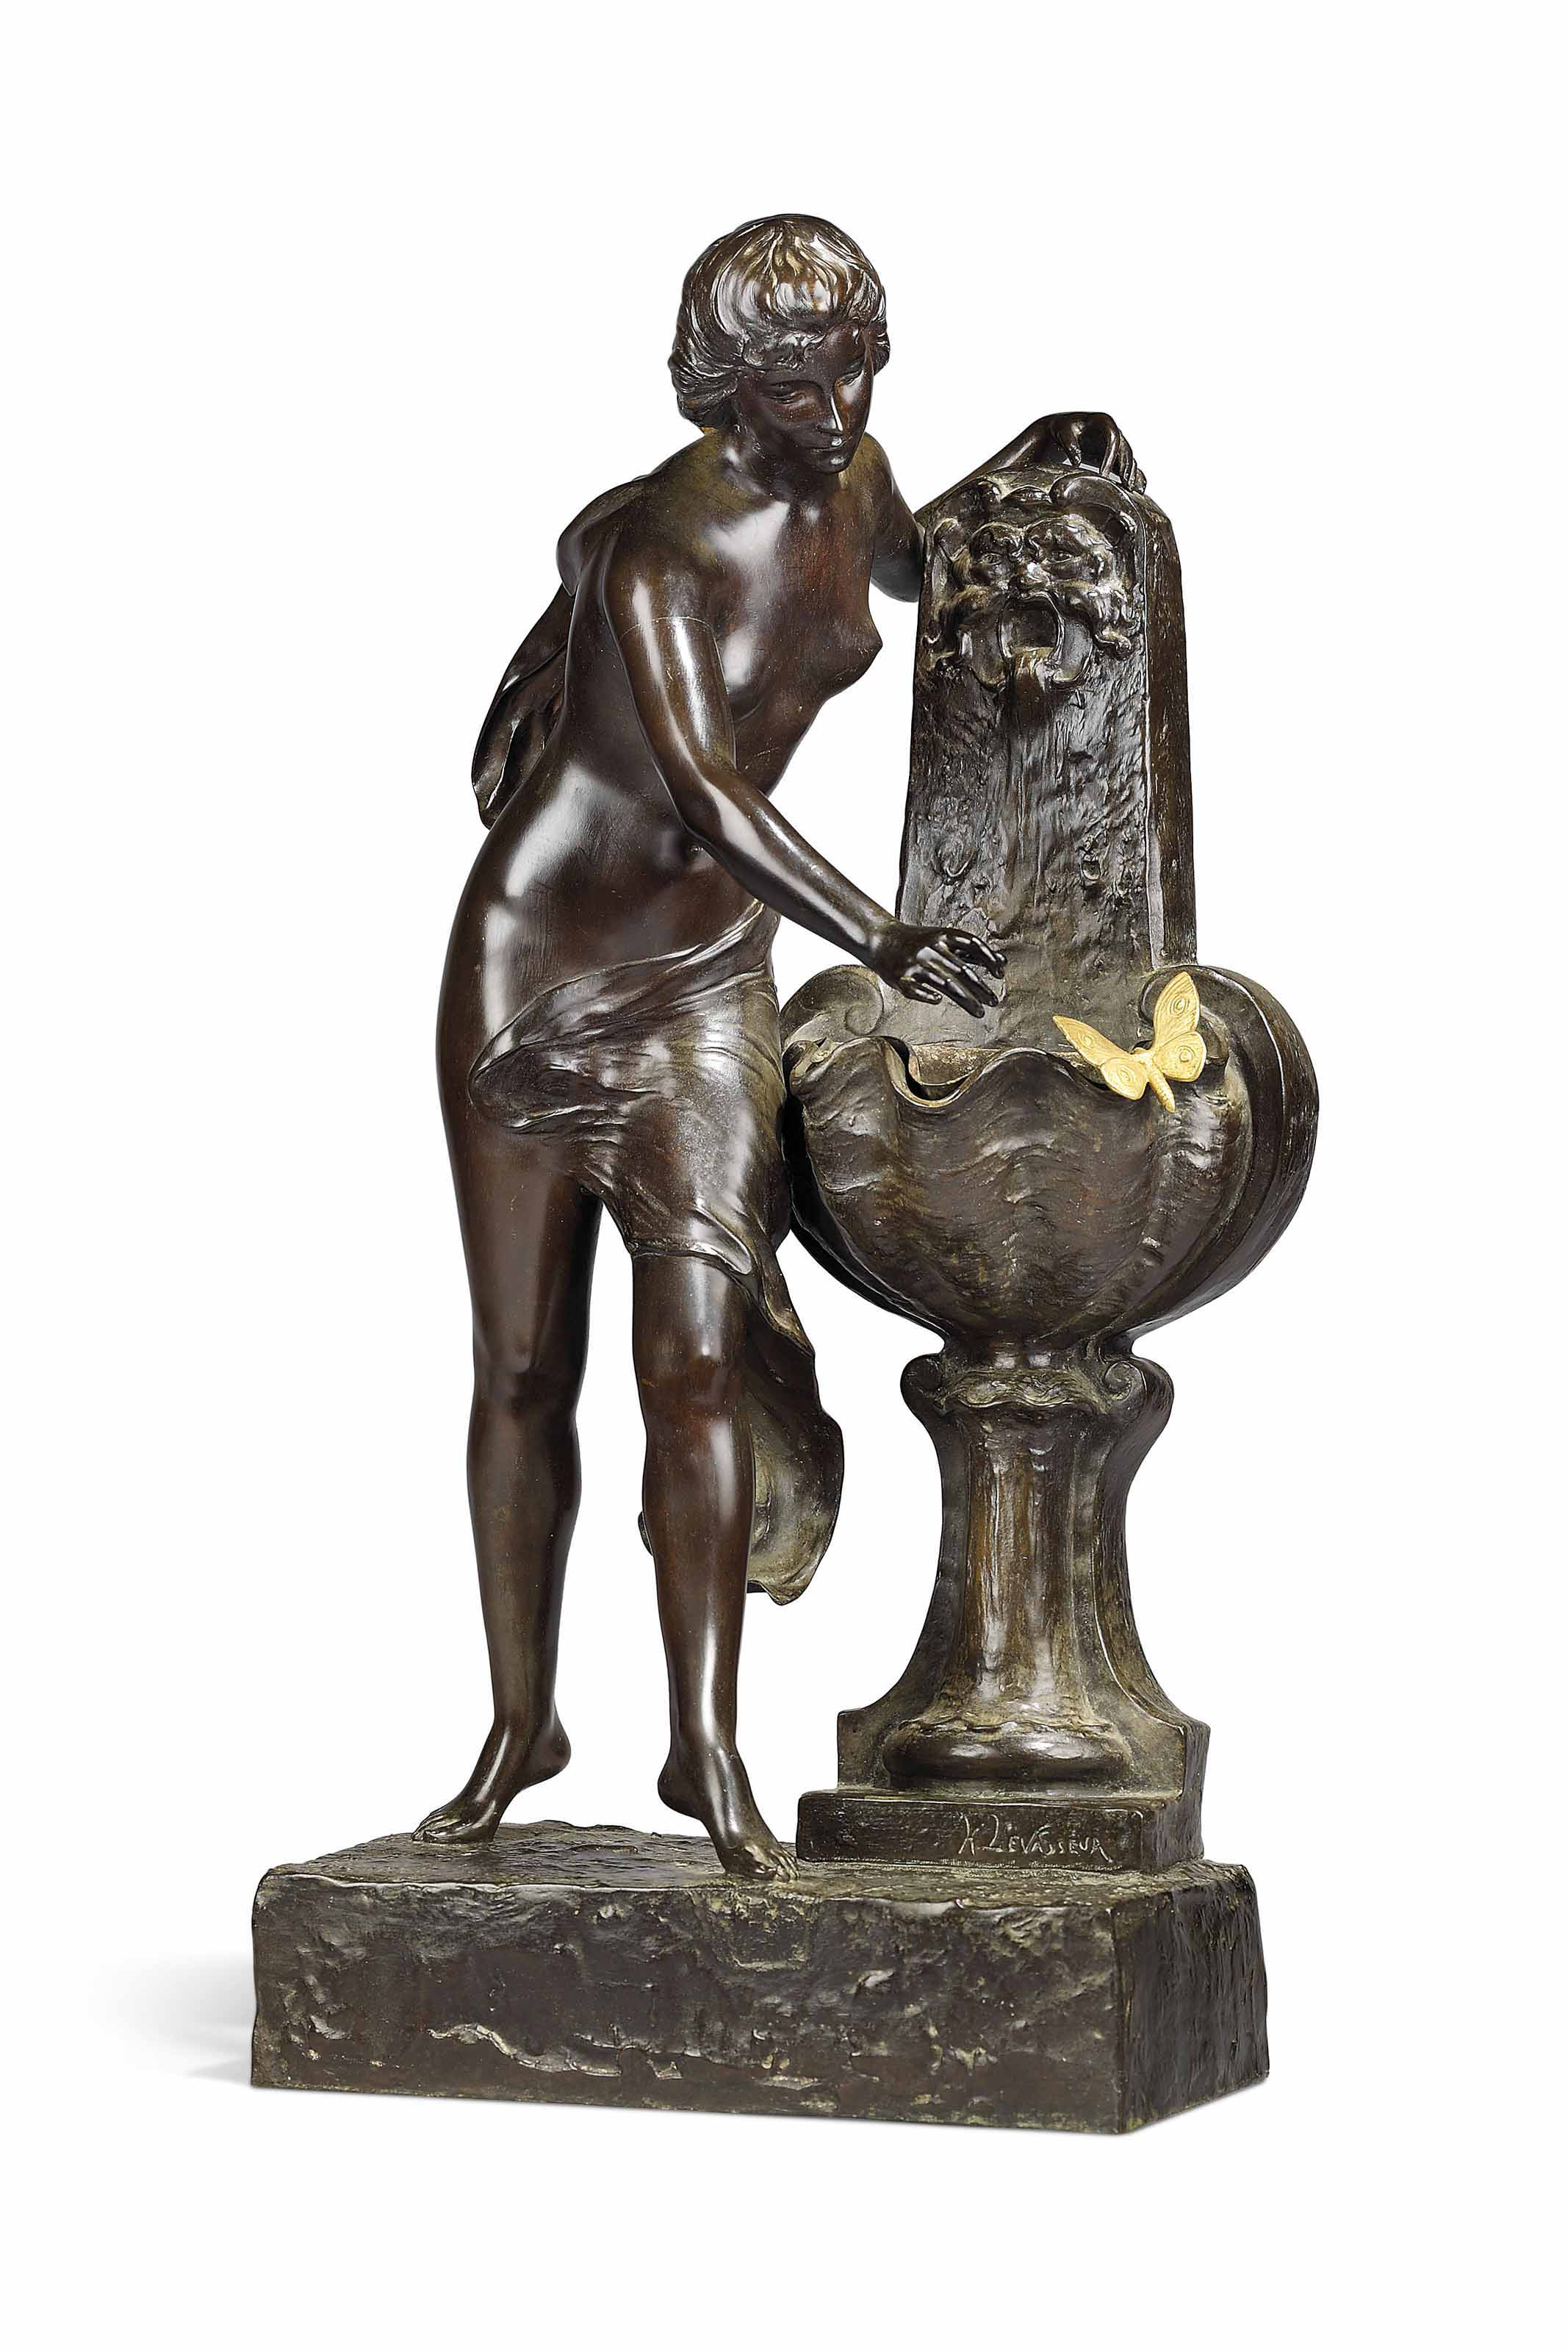 A FRENCH GILT AND PATINATED BRONZE FIGURAL FOUNTAIN GROUP, ENTITLED 'NYMPHE ET PAPILLON'